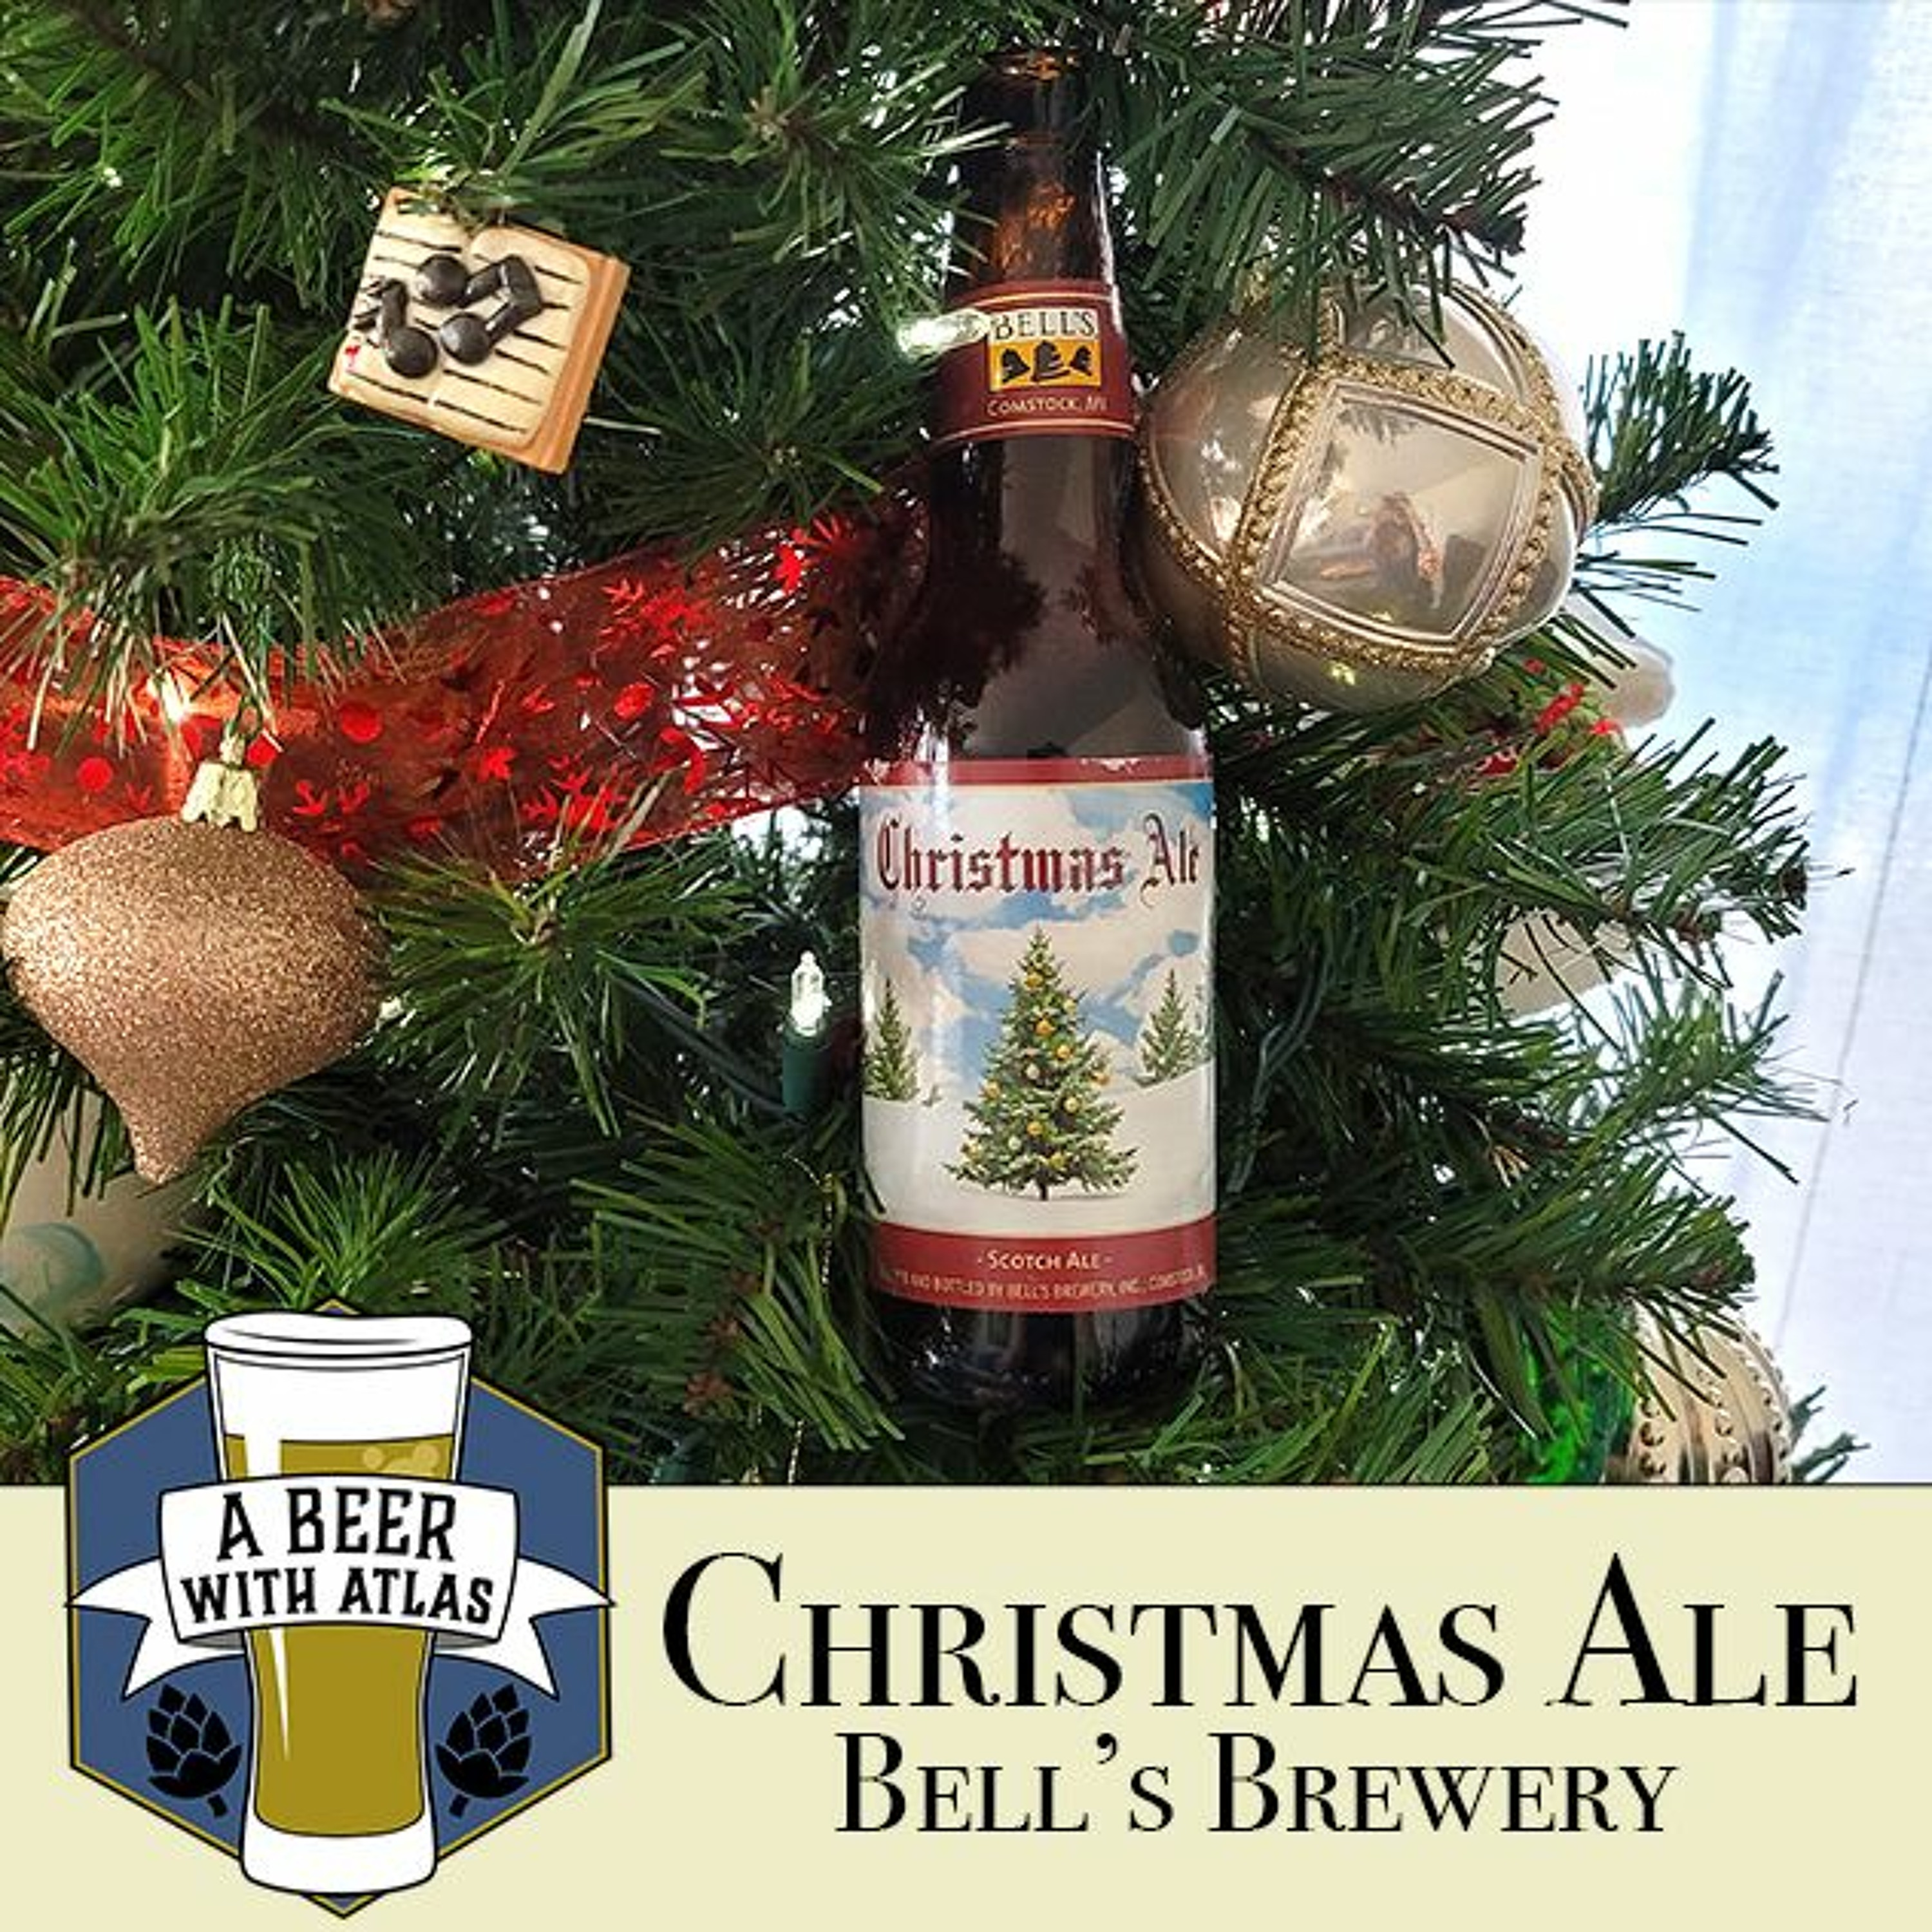 Christmas Ale from Bell's Brewery - Beer With Atlas 120 - the travel nurse craft beer review podcast